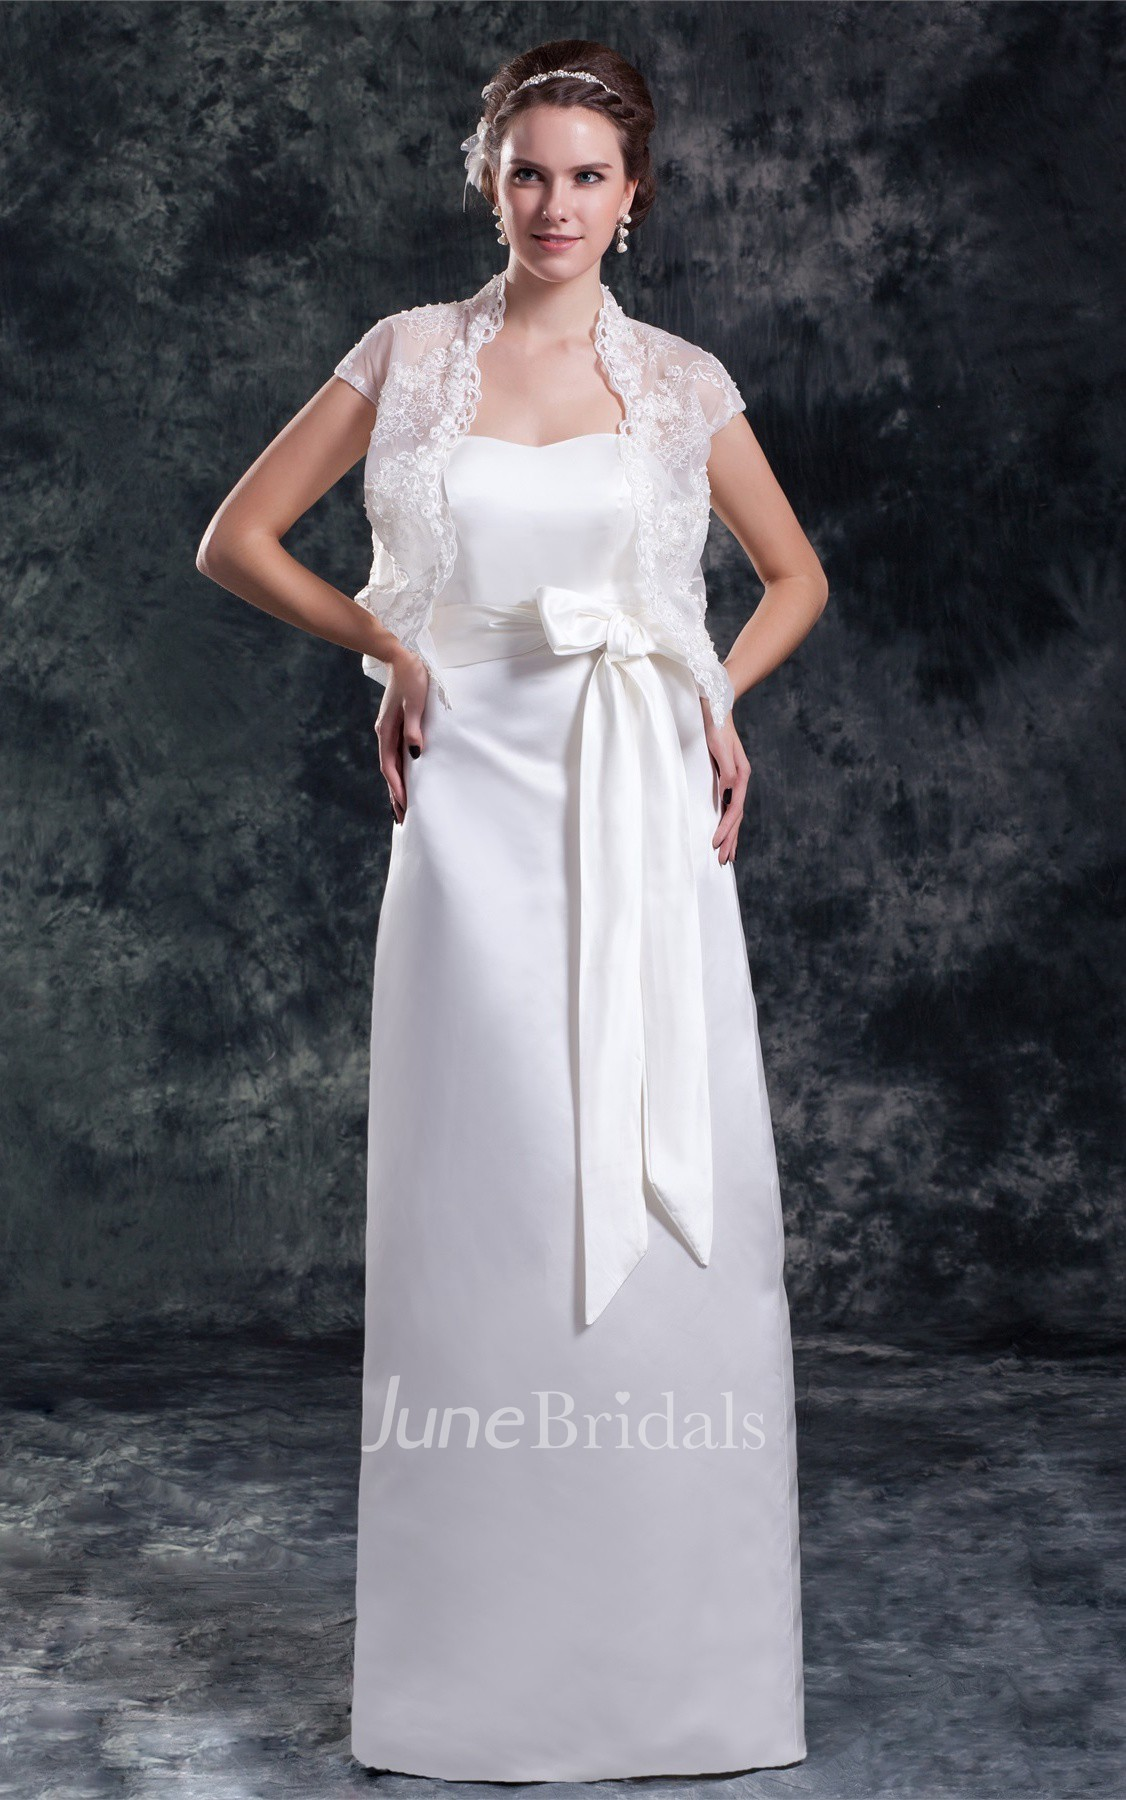 Satin Sheath Floor Length Dress With Lace Jacket And